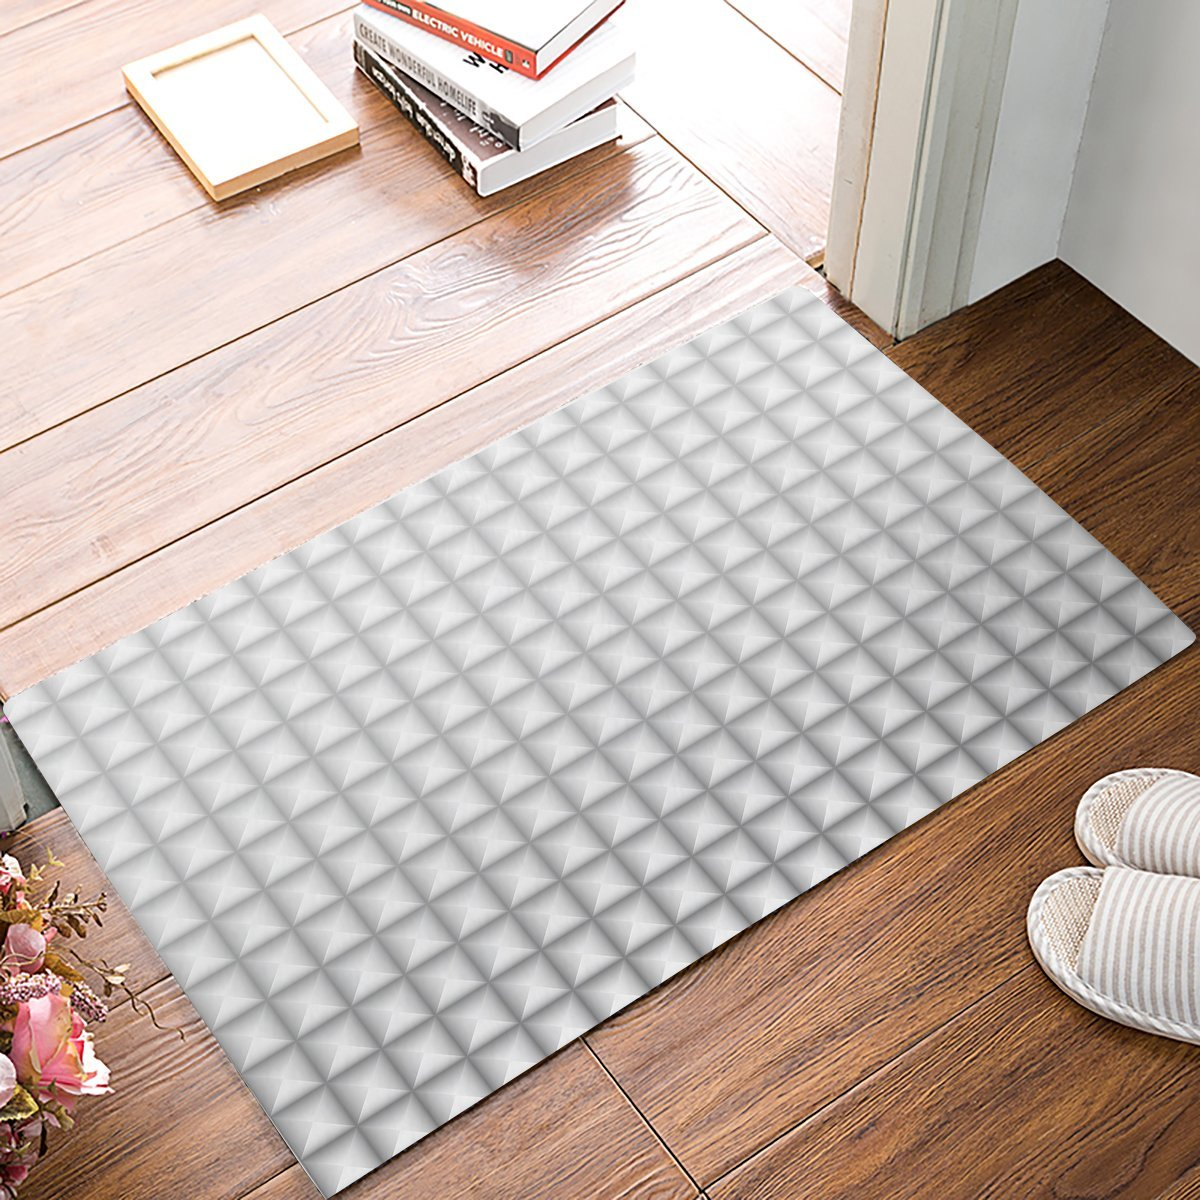 White Kitchen Floor Mats: Grey And White Gradient Square Grid Plaid Pattern Door